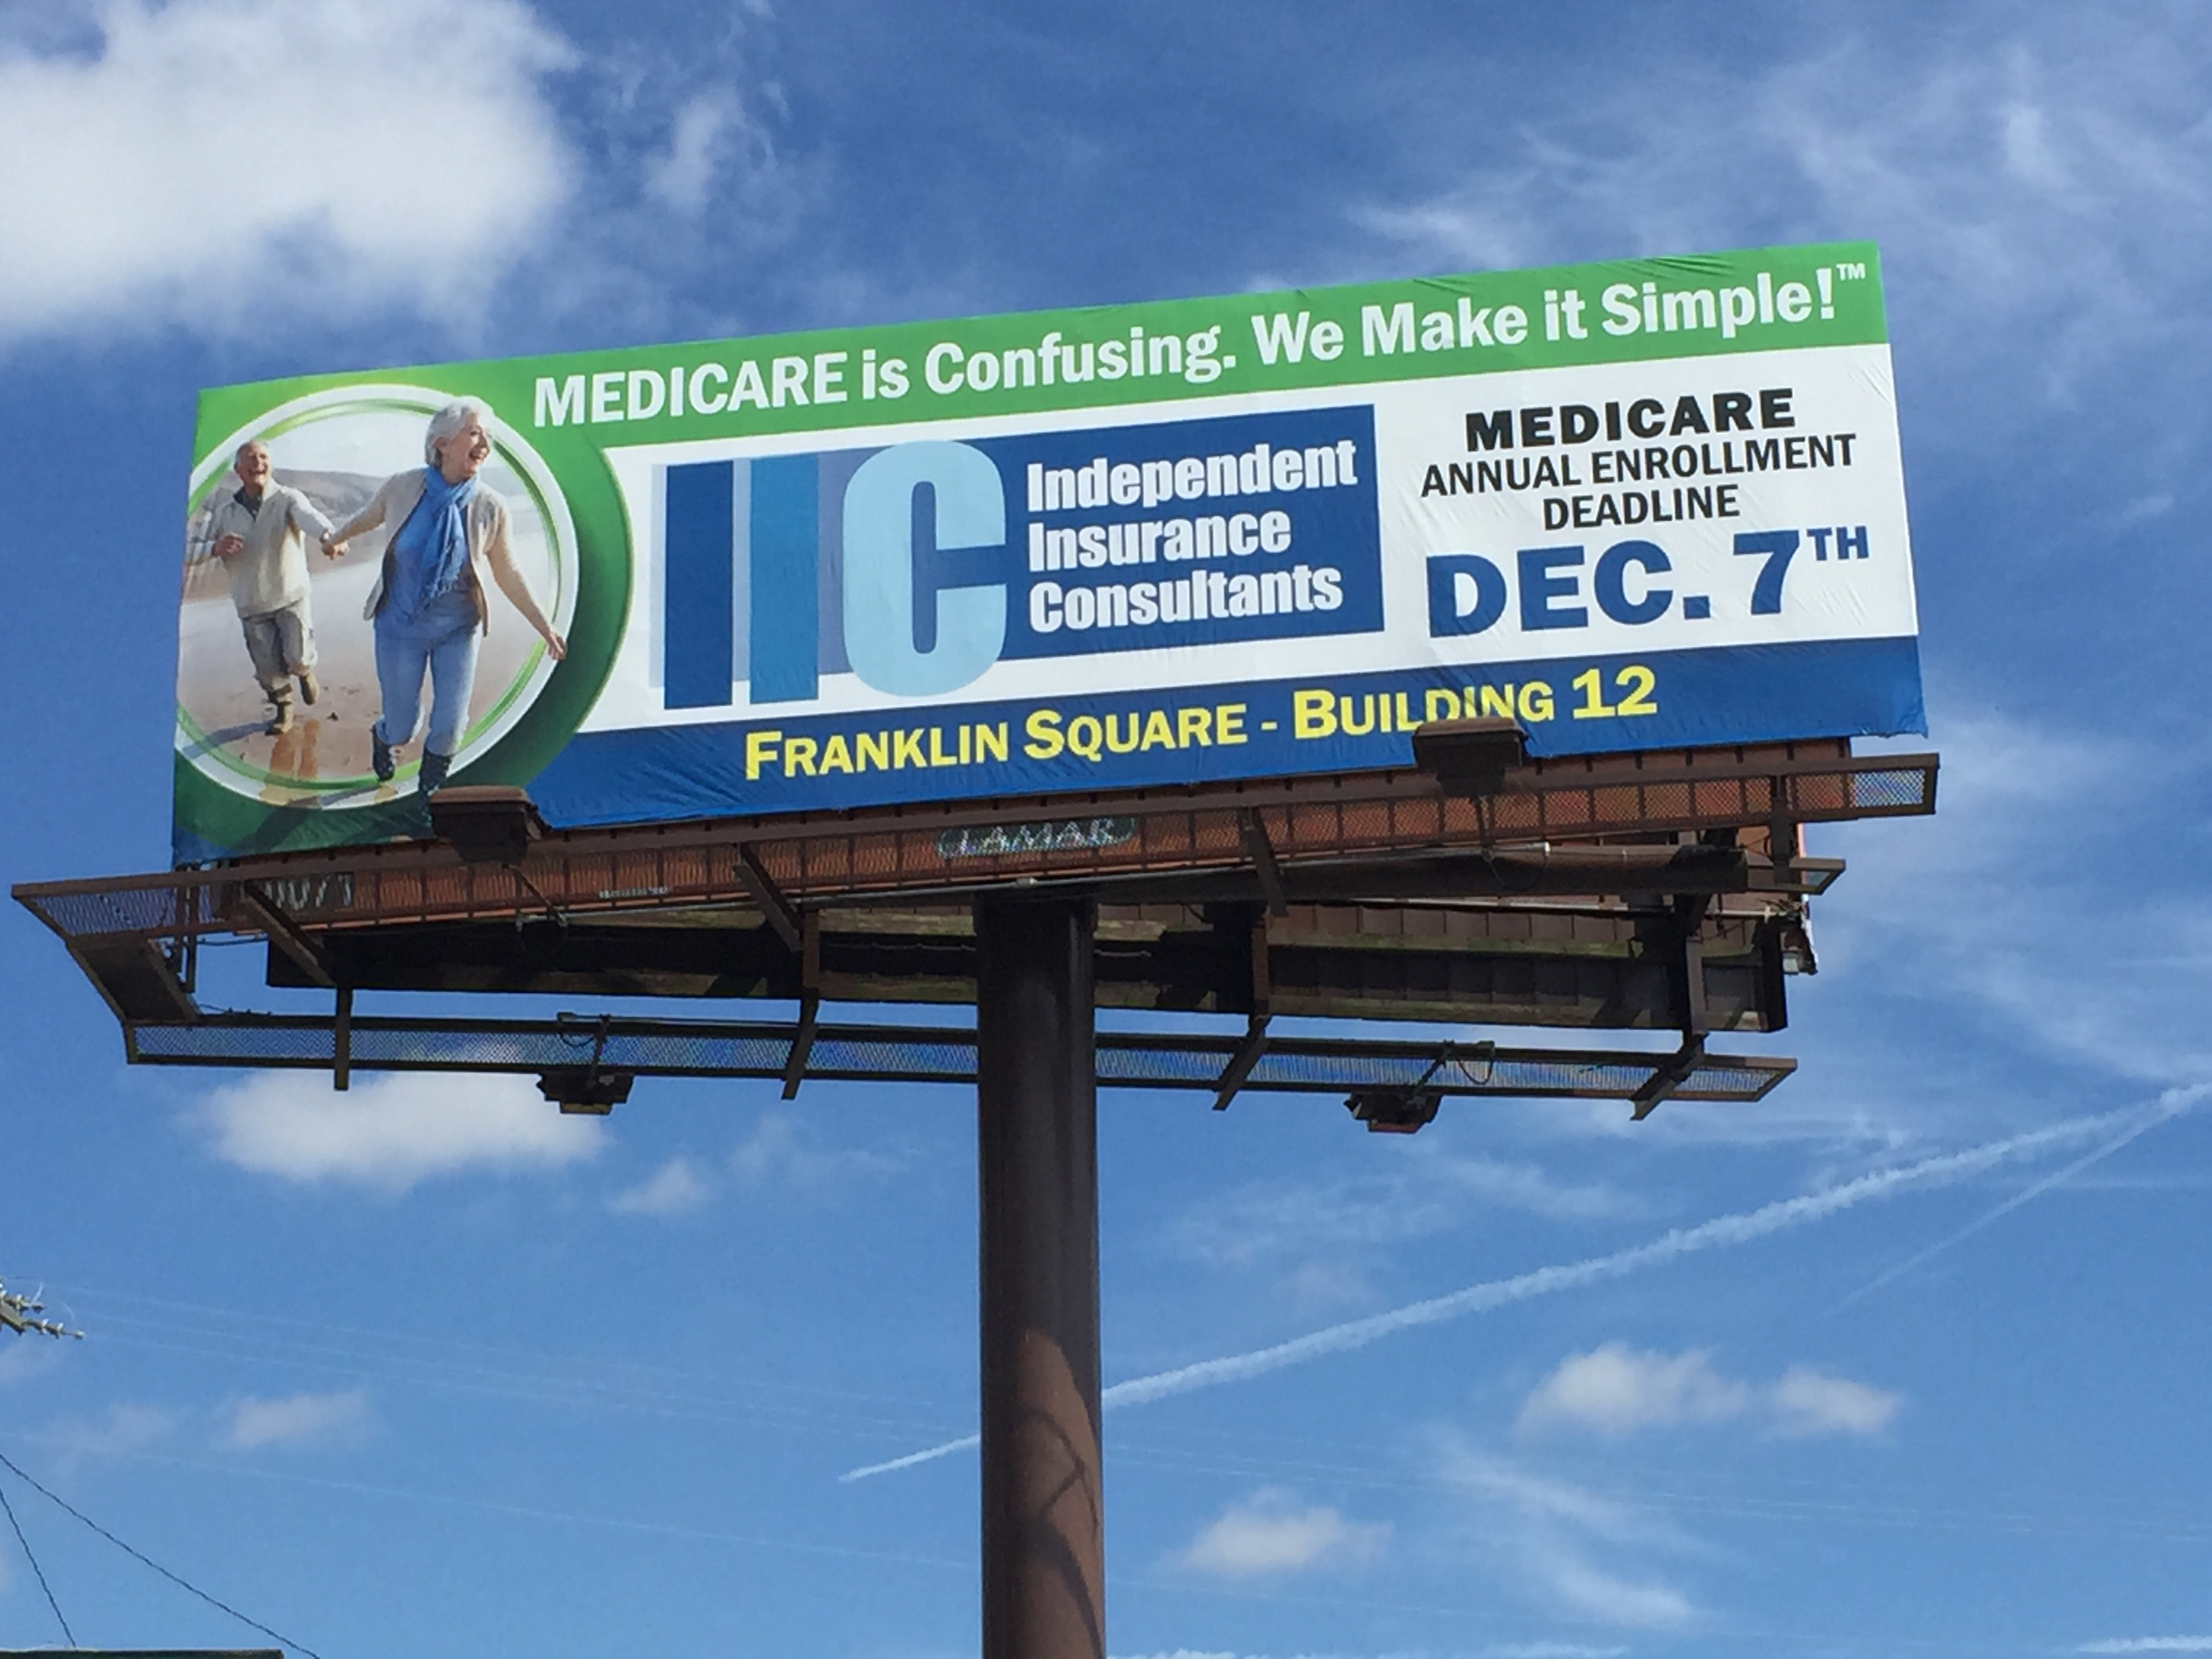 Medicare Is Confusing. We Make It SIMPLE! - Medicare ...